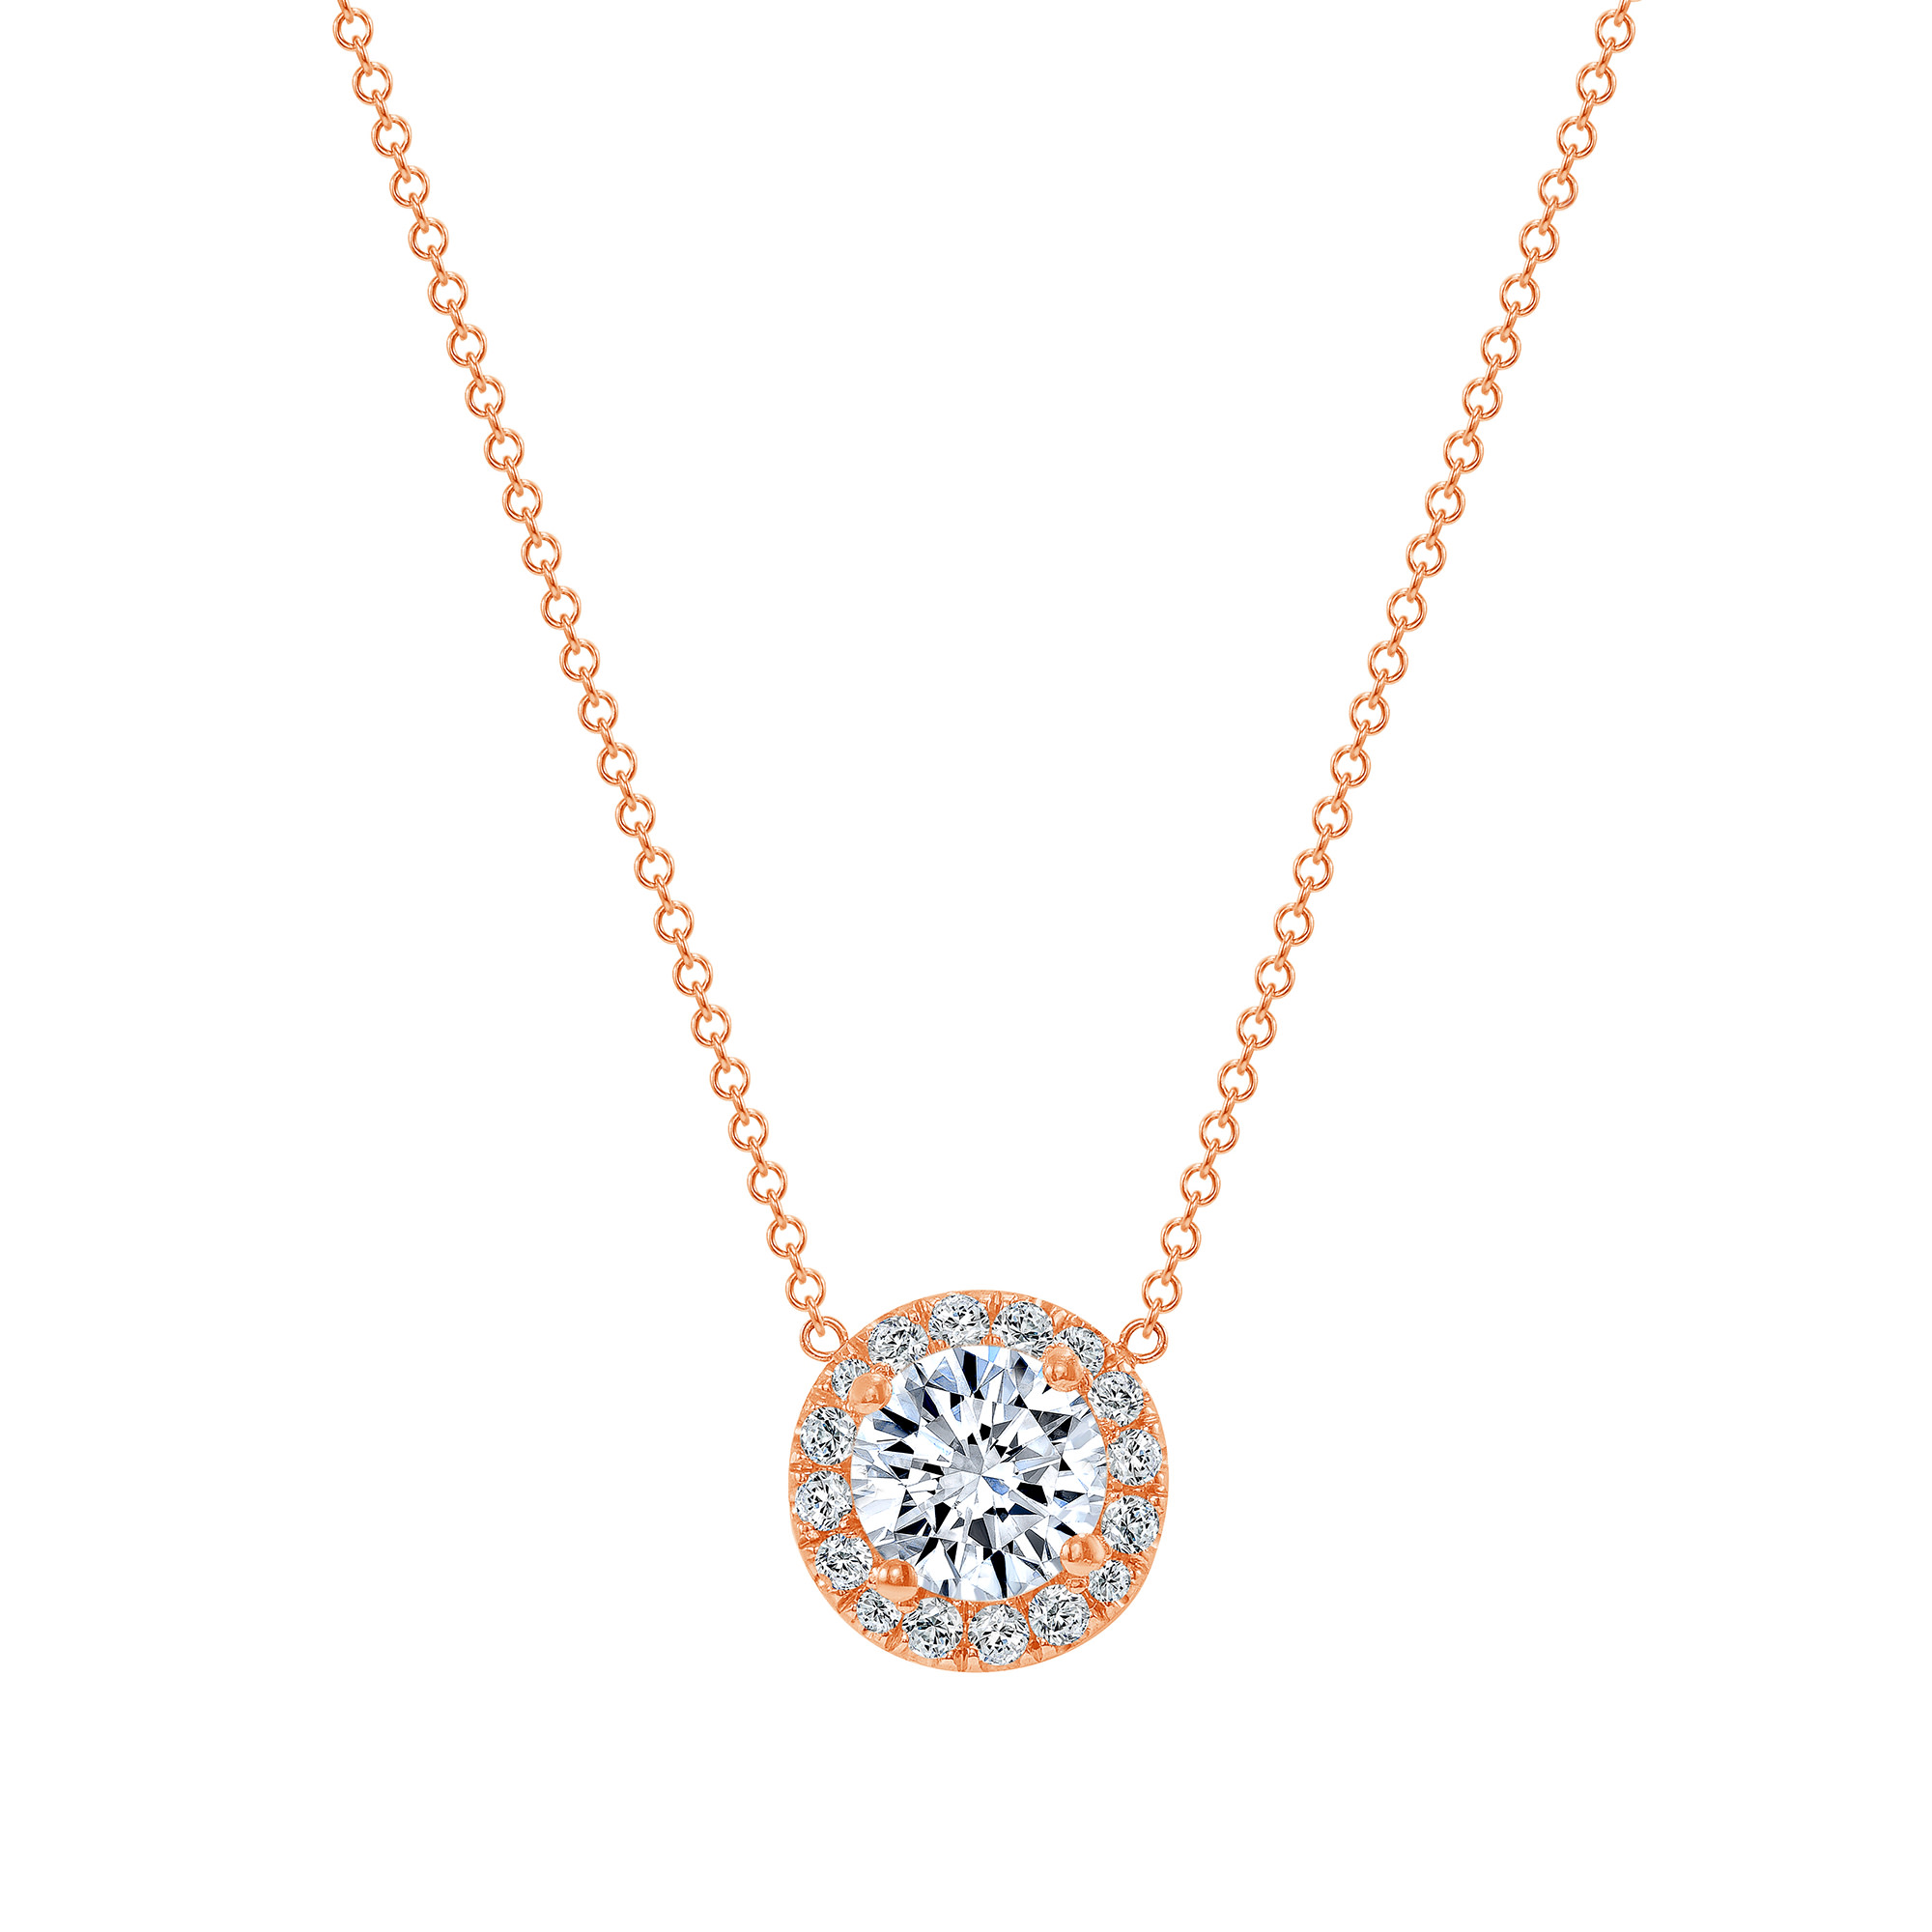 diamond halo pendant necklace | gold round pendant necklace